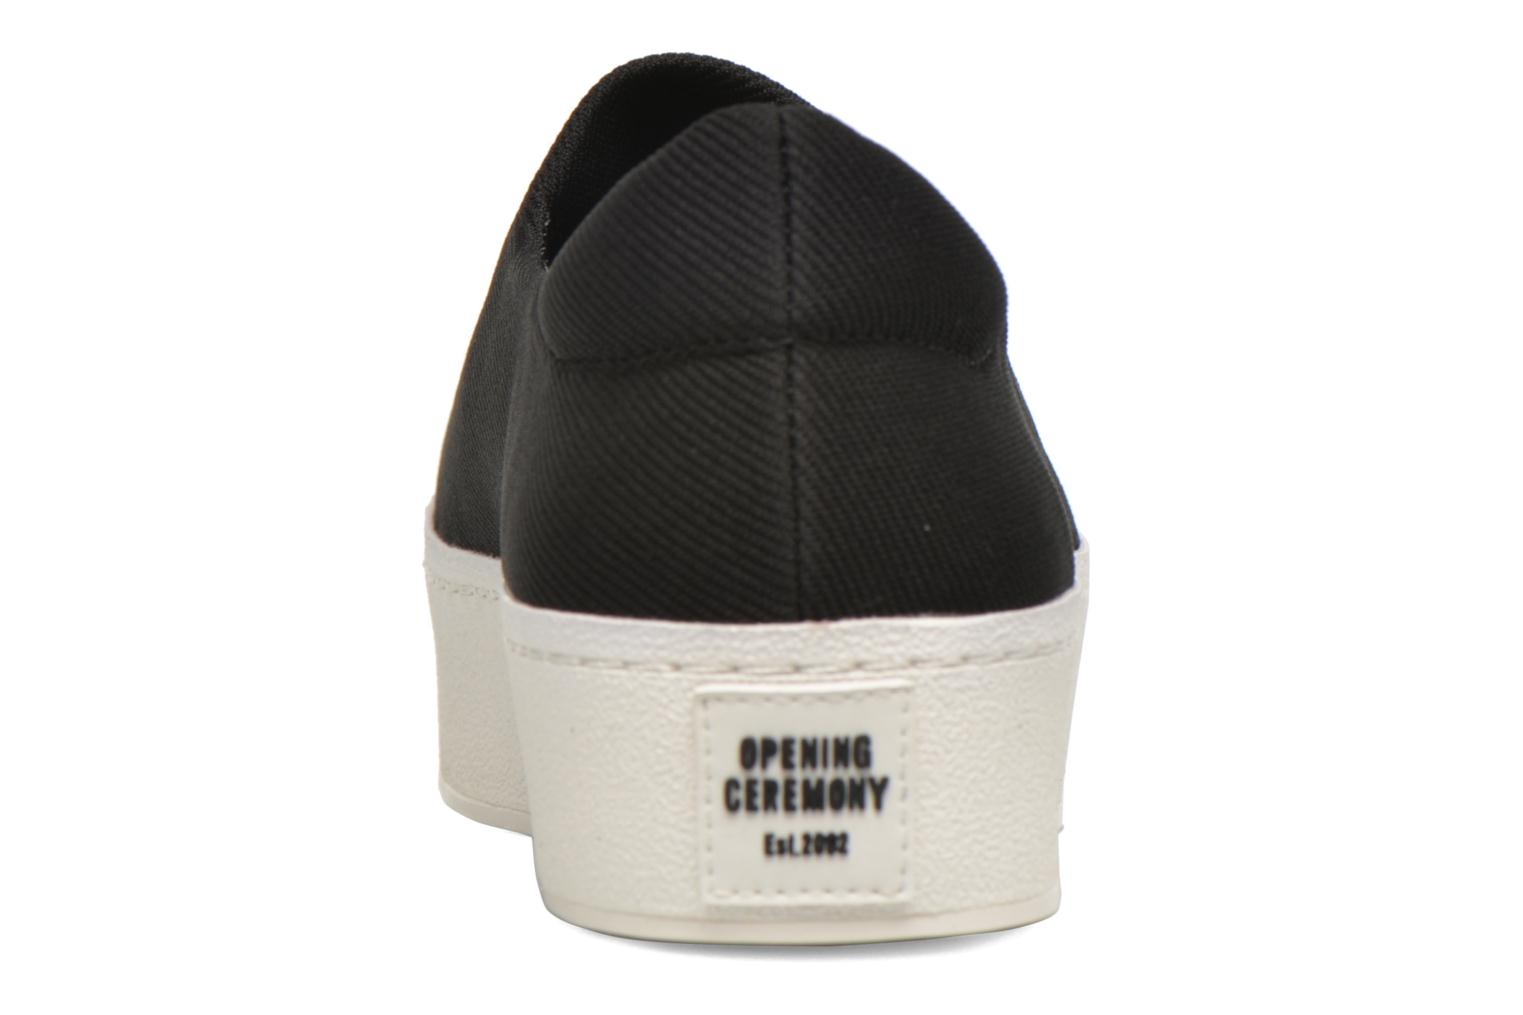 Baskets Opening Ceremony Cici Broidery Noir vue droite